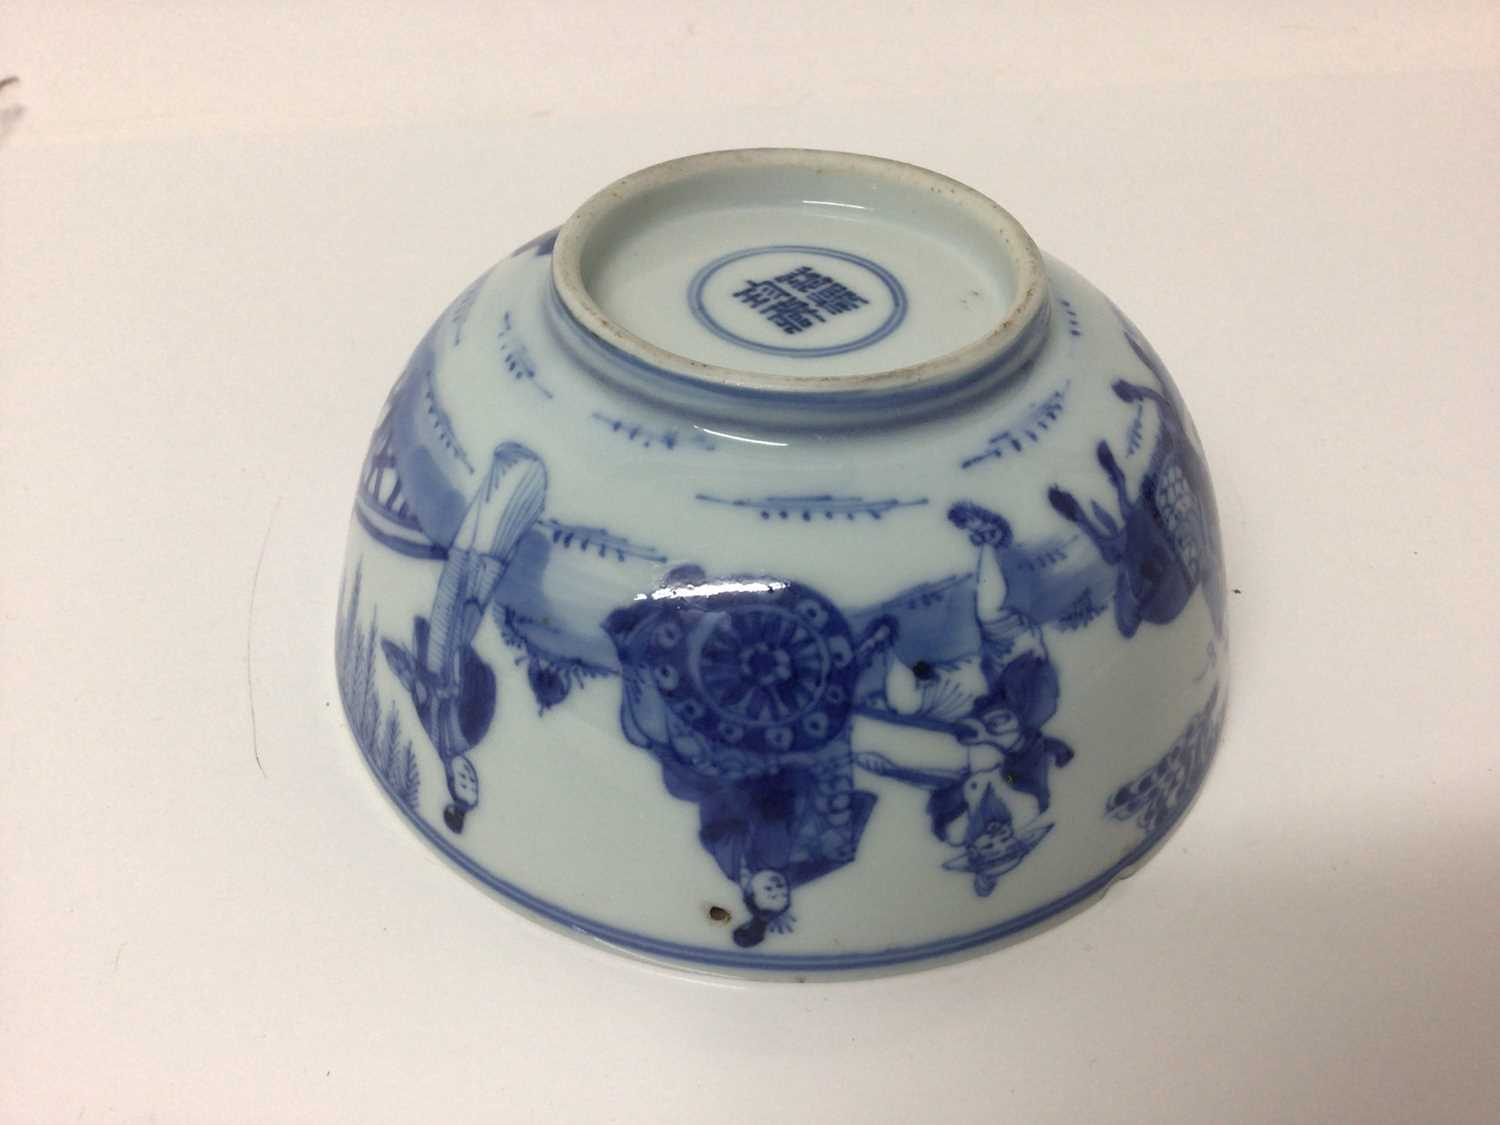 Chinese Kangxi porcelain jug and cover with later silver mount, together with a bowl (2) - Image 6 of 16